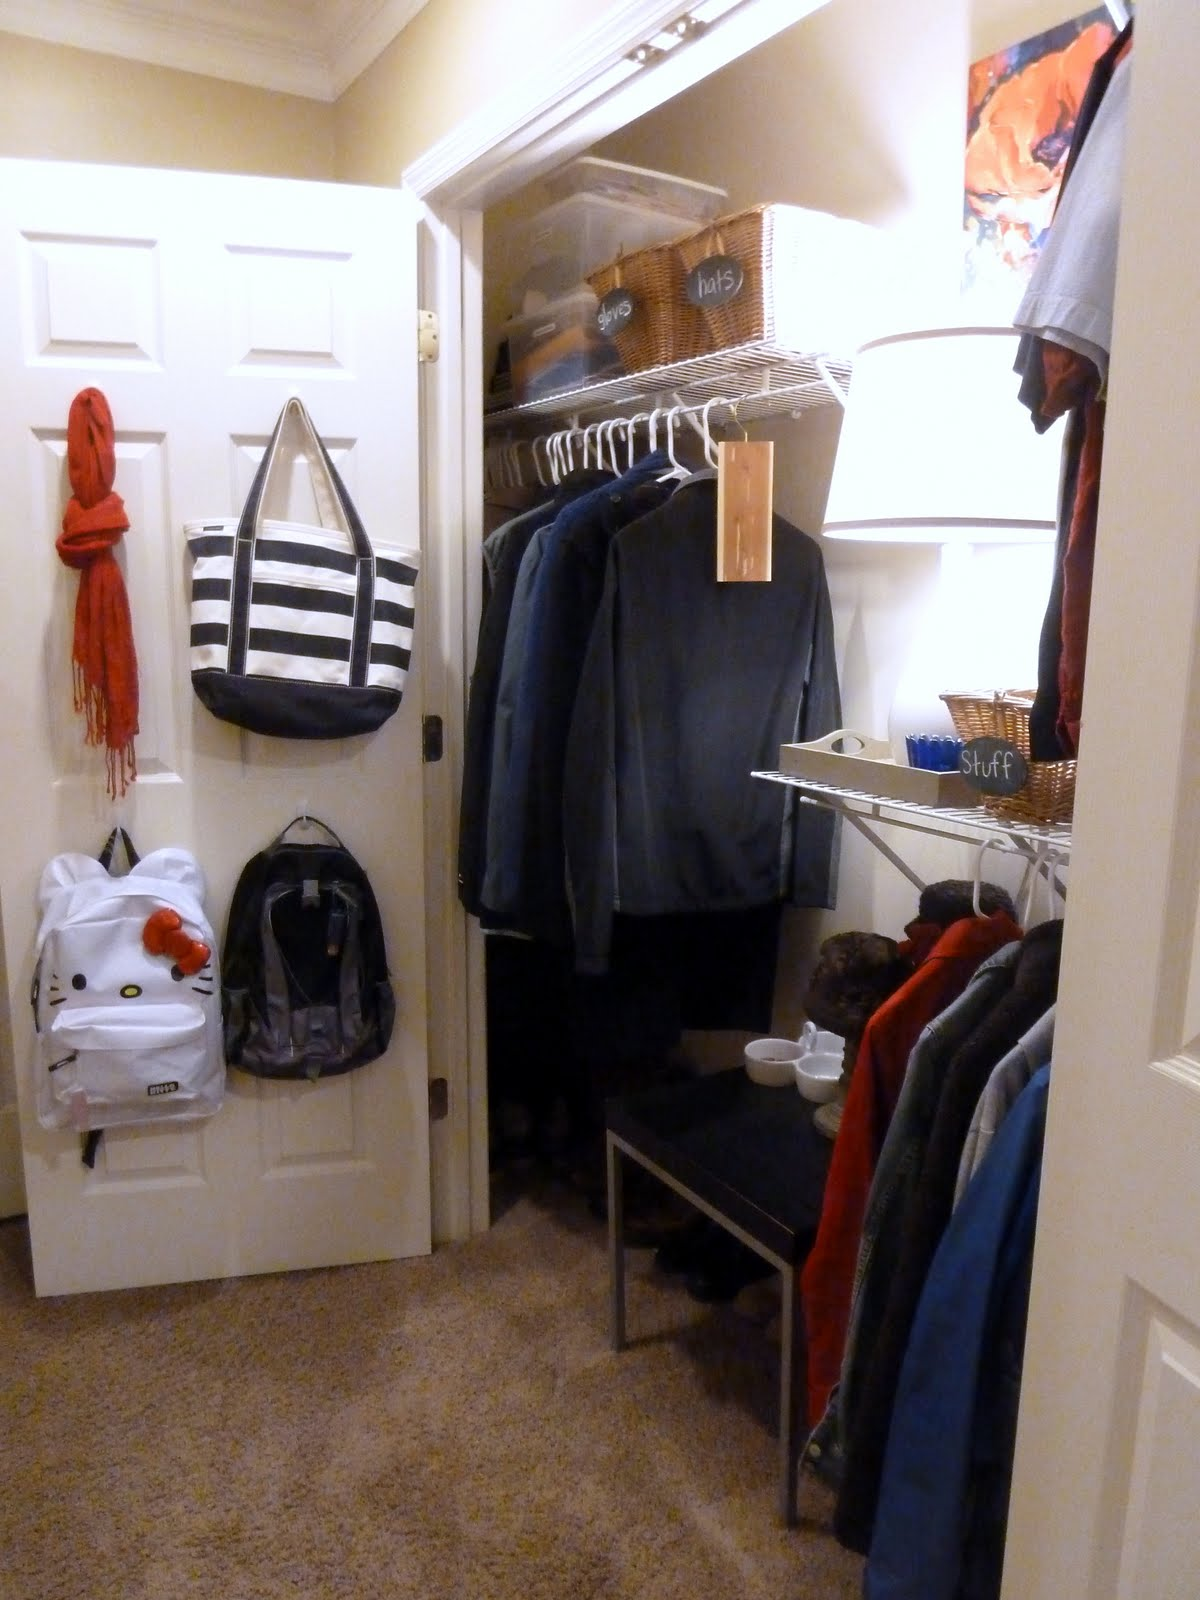 Mudroom Closet Organization Ideas Part - 42: Progress In The Mudroom U2013 Closet Doors Are Gone!